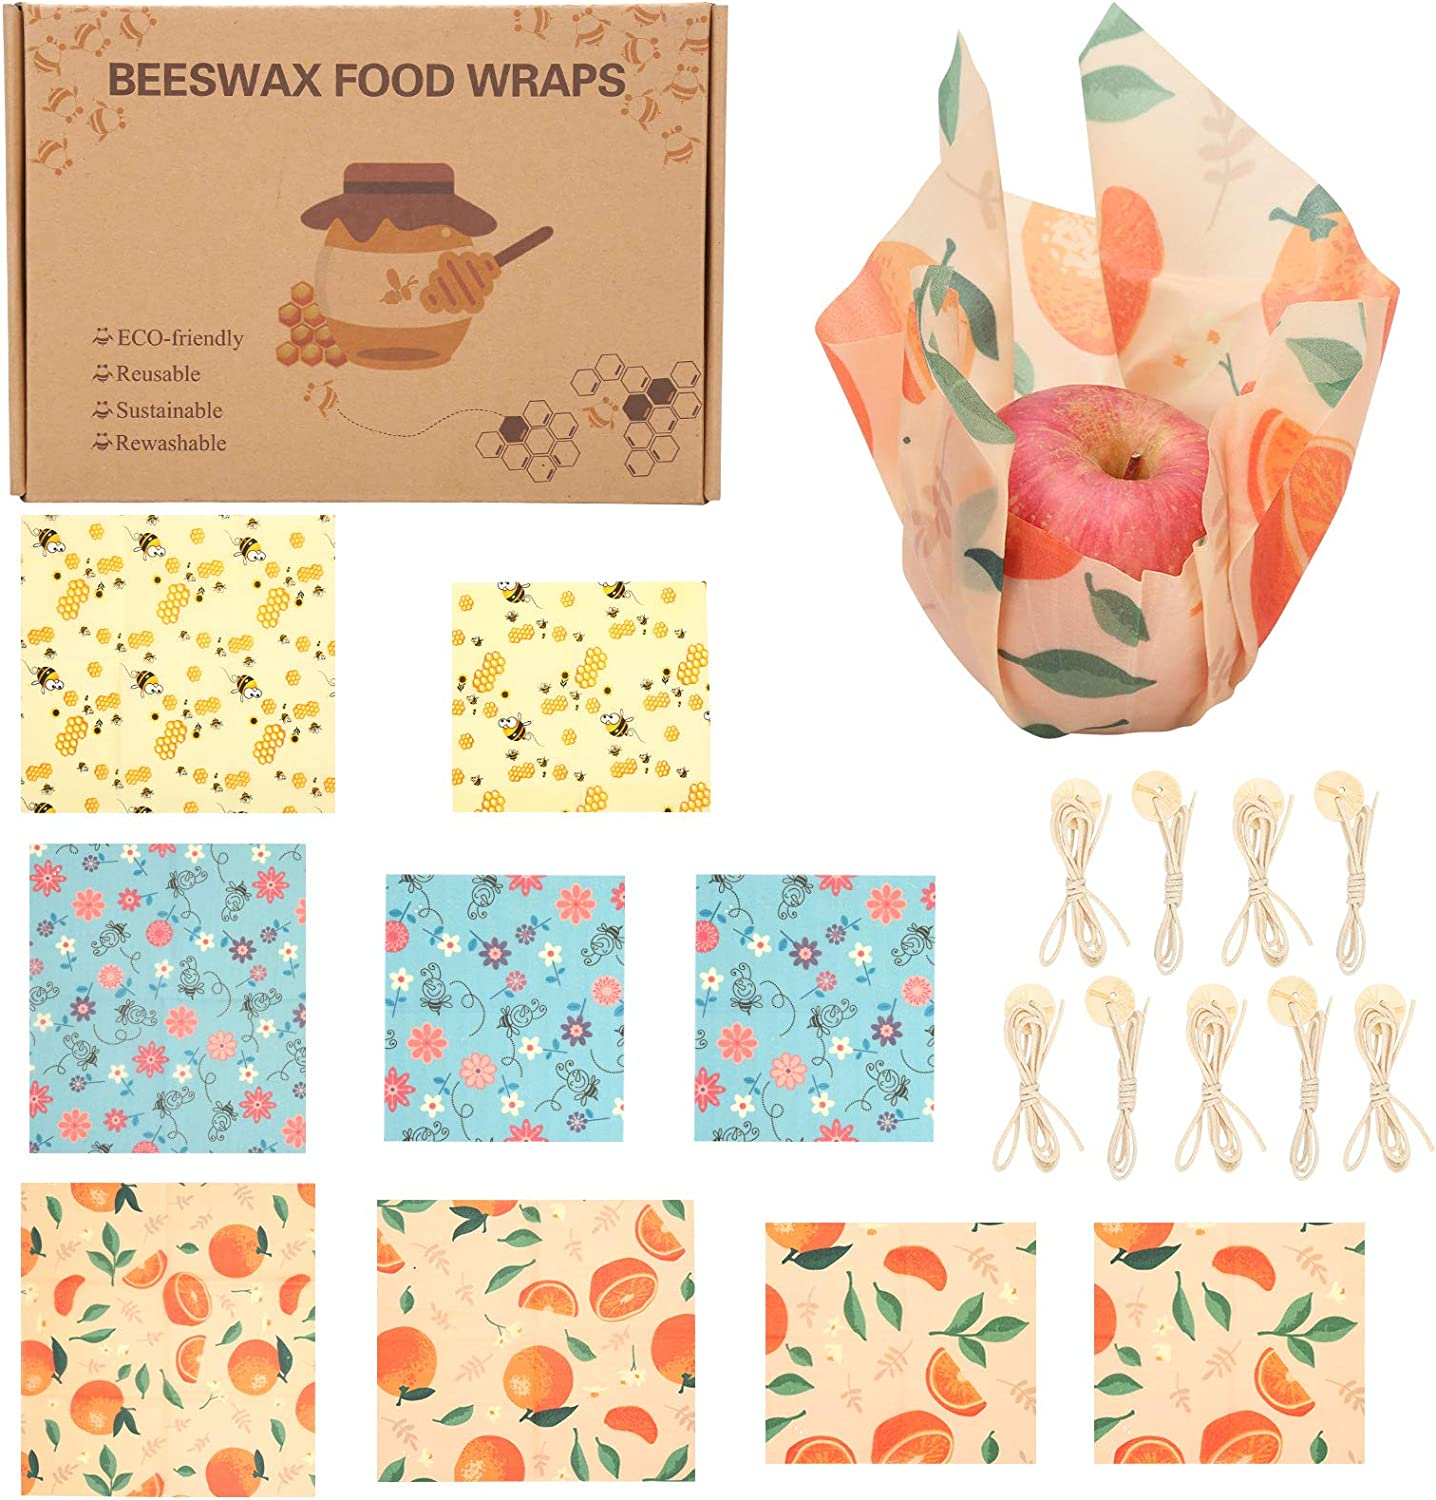 Merforu Reusable Beeswax Wraps Assorted Packs R 9 Complete Free Shipping Eco-Friendly - Max 63% OFF